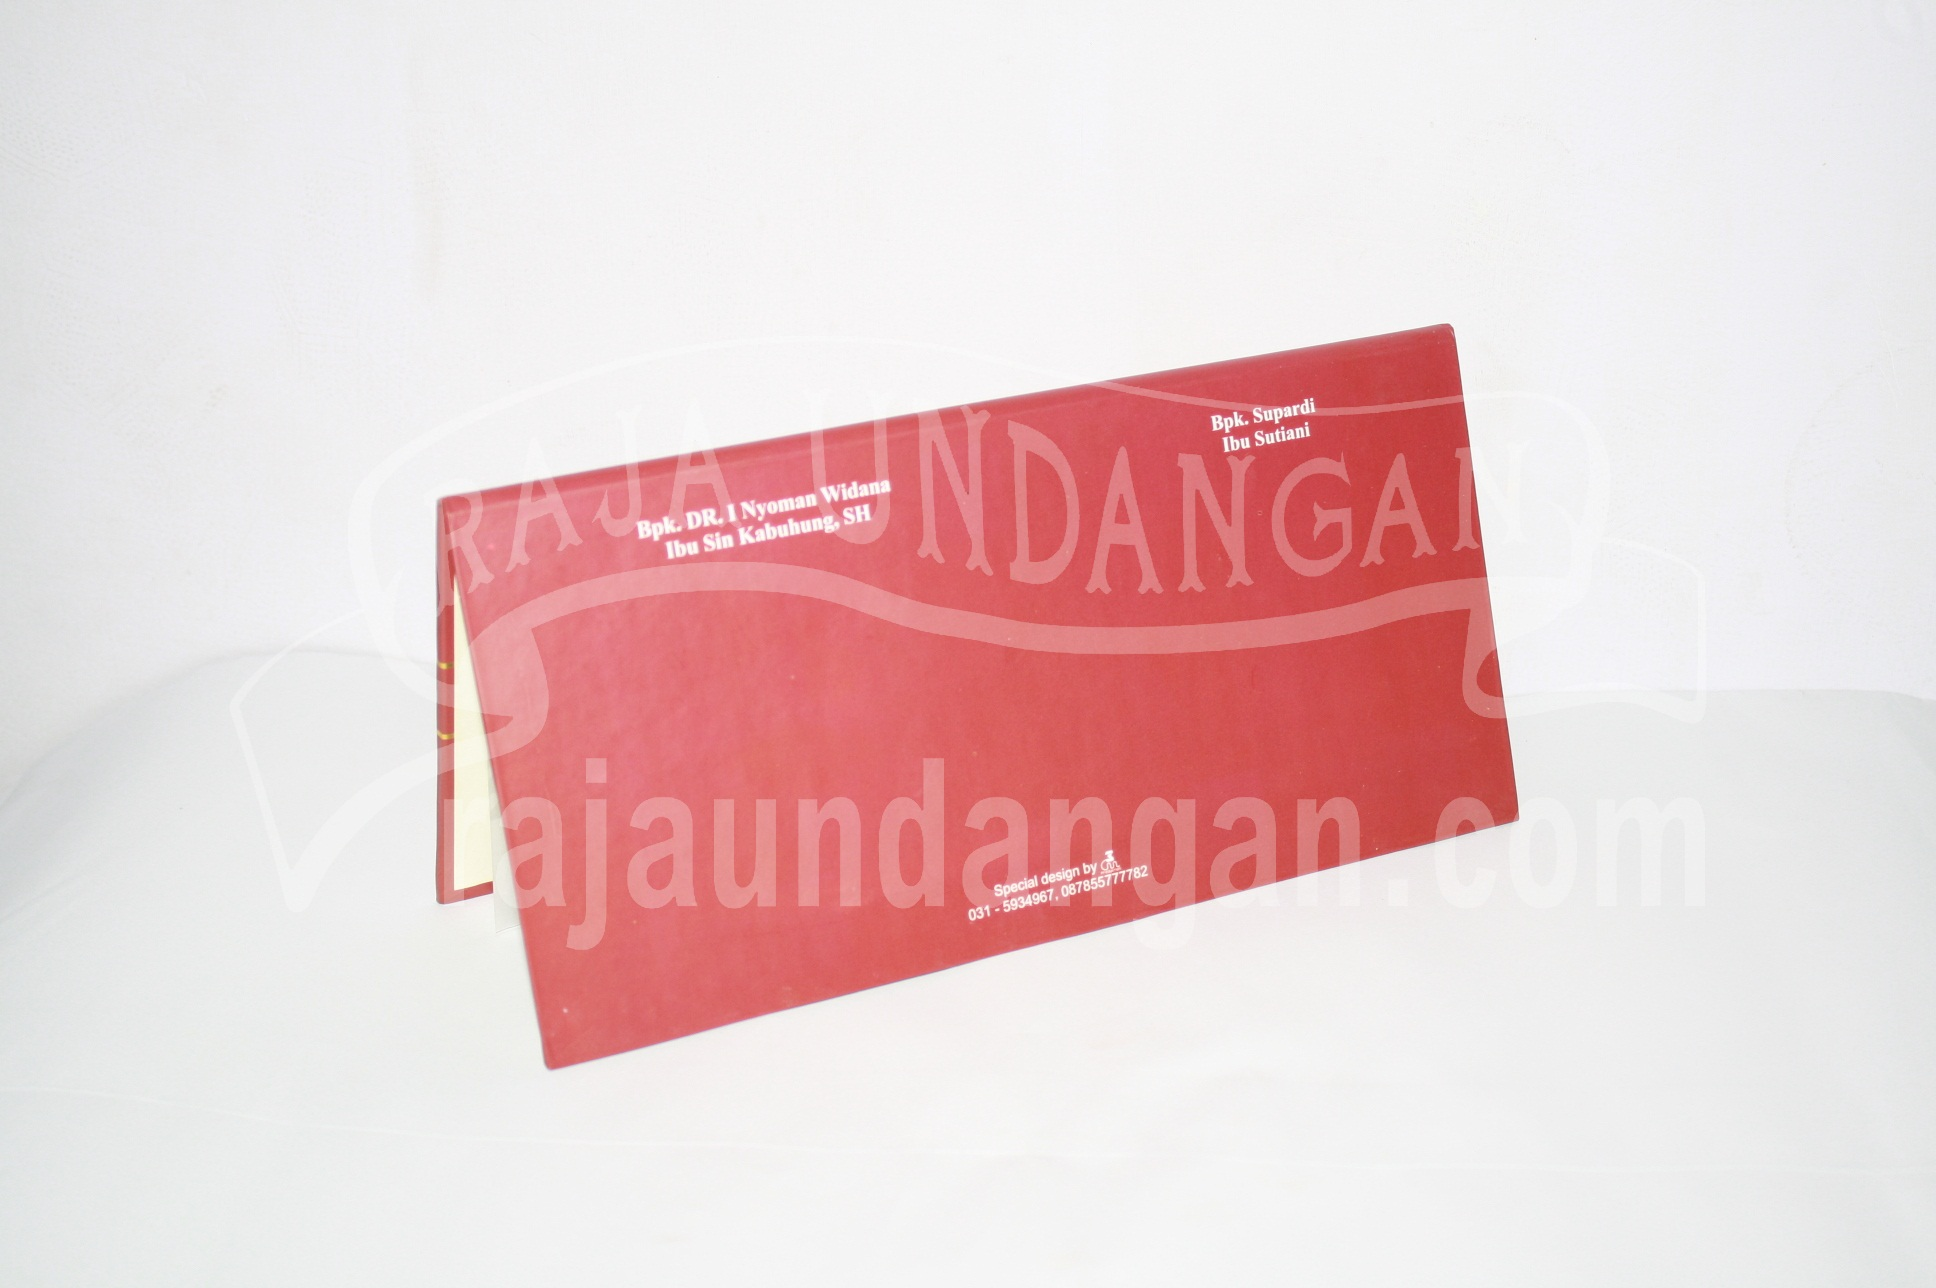 Undangan Hardcover Ferdinand dan Naning 2 - Desain Wedding Invitations Unik dan Simple